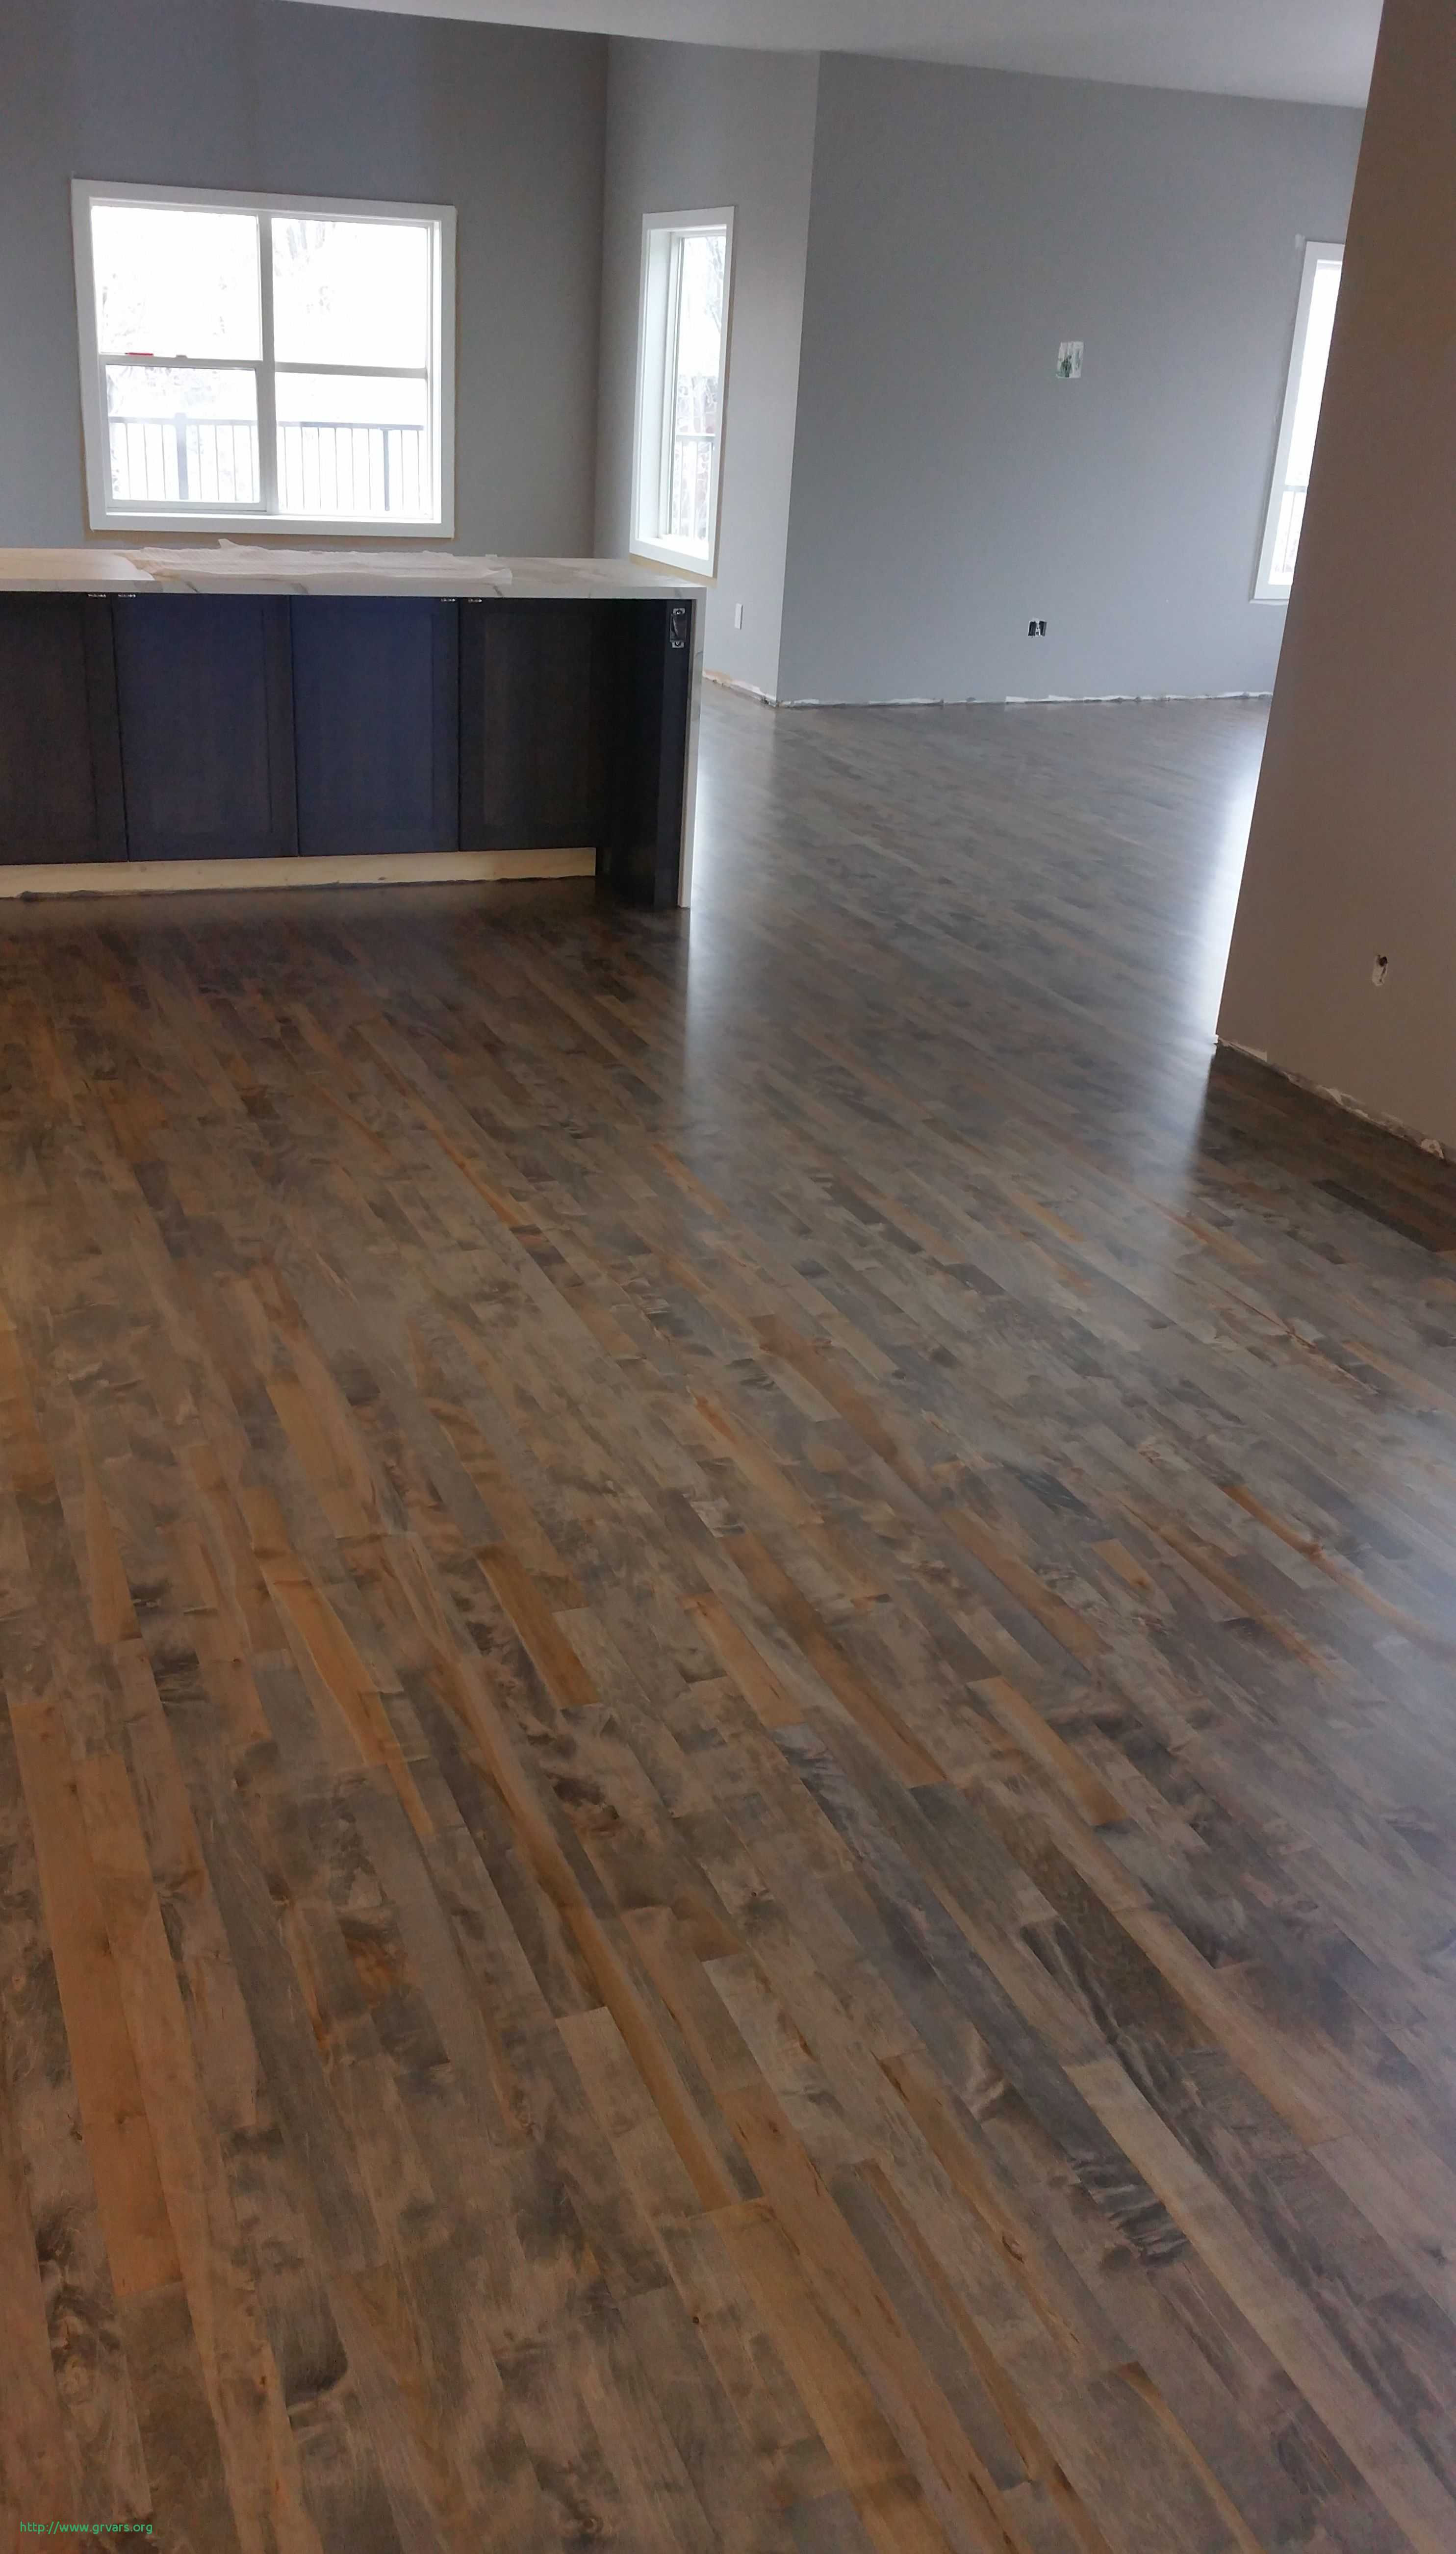 Hardwood Floor Refinishing Polyurethane Of How Many Coats Of Polyurethane On Hardwood Floors Nouveau for How Many Coats Of Polyurethane On Hardwood Floors Inspirant 2 1 4 Maple Sand On